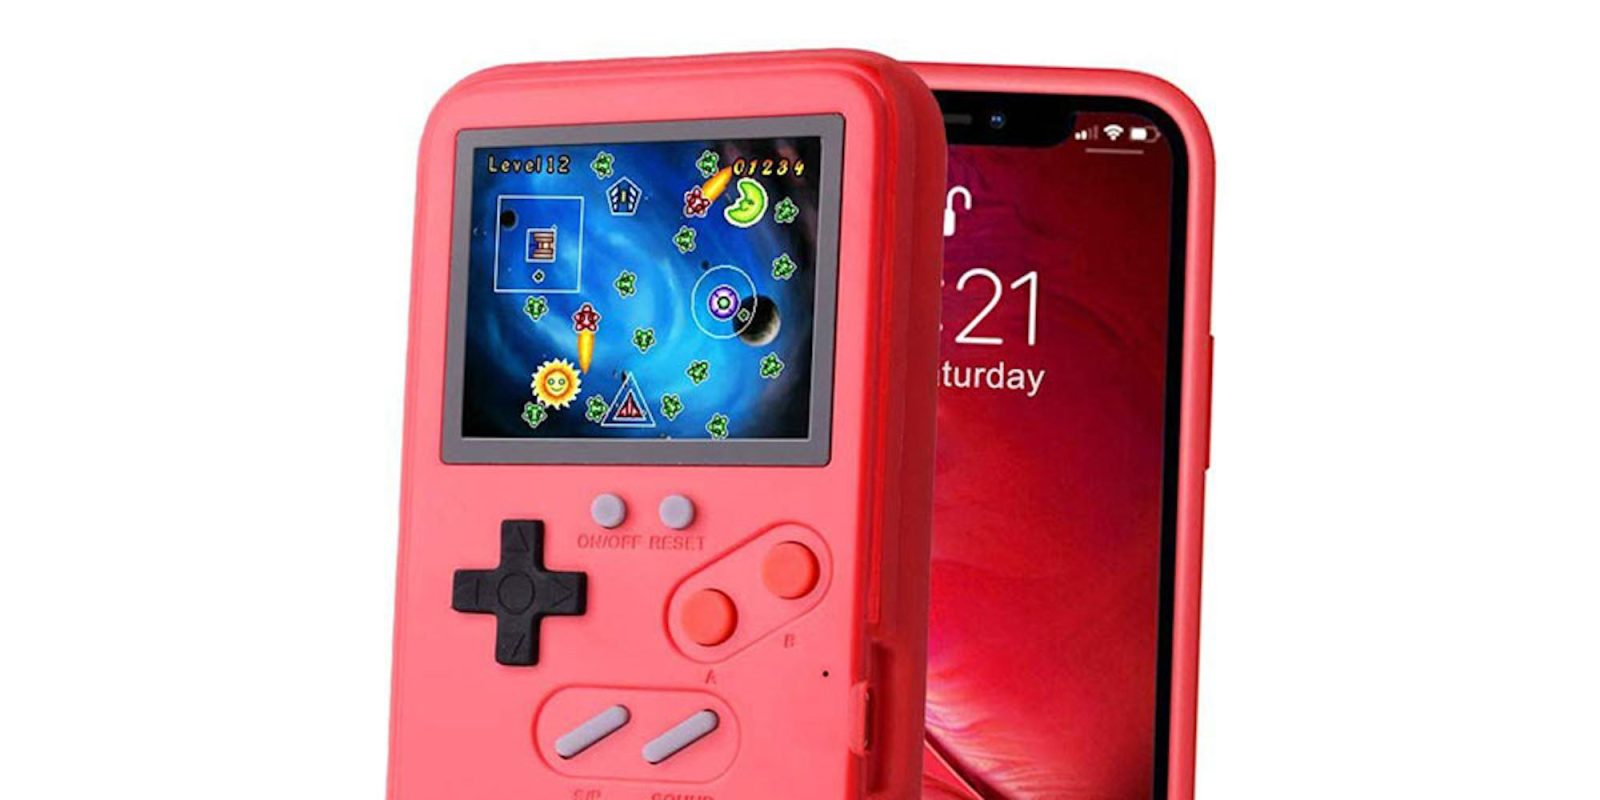 This case turns your iPhone into a retro handheld console for just $19